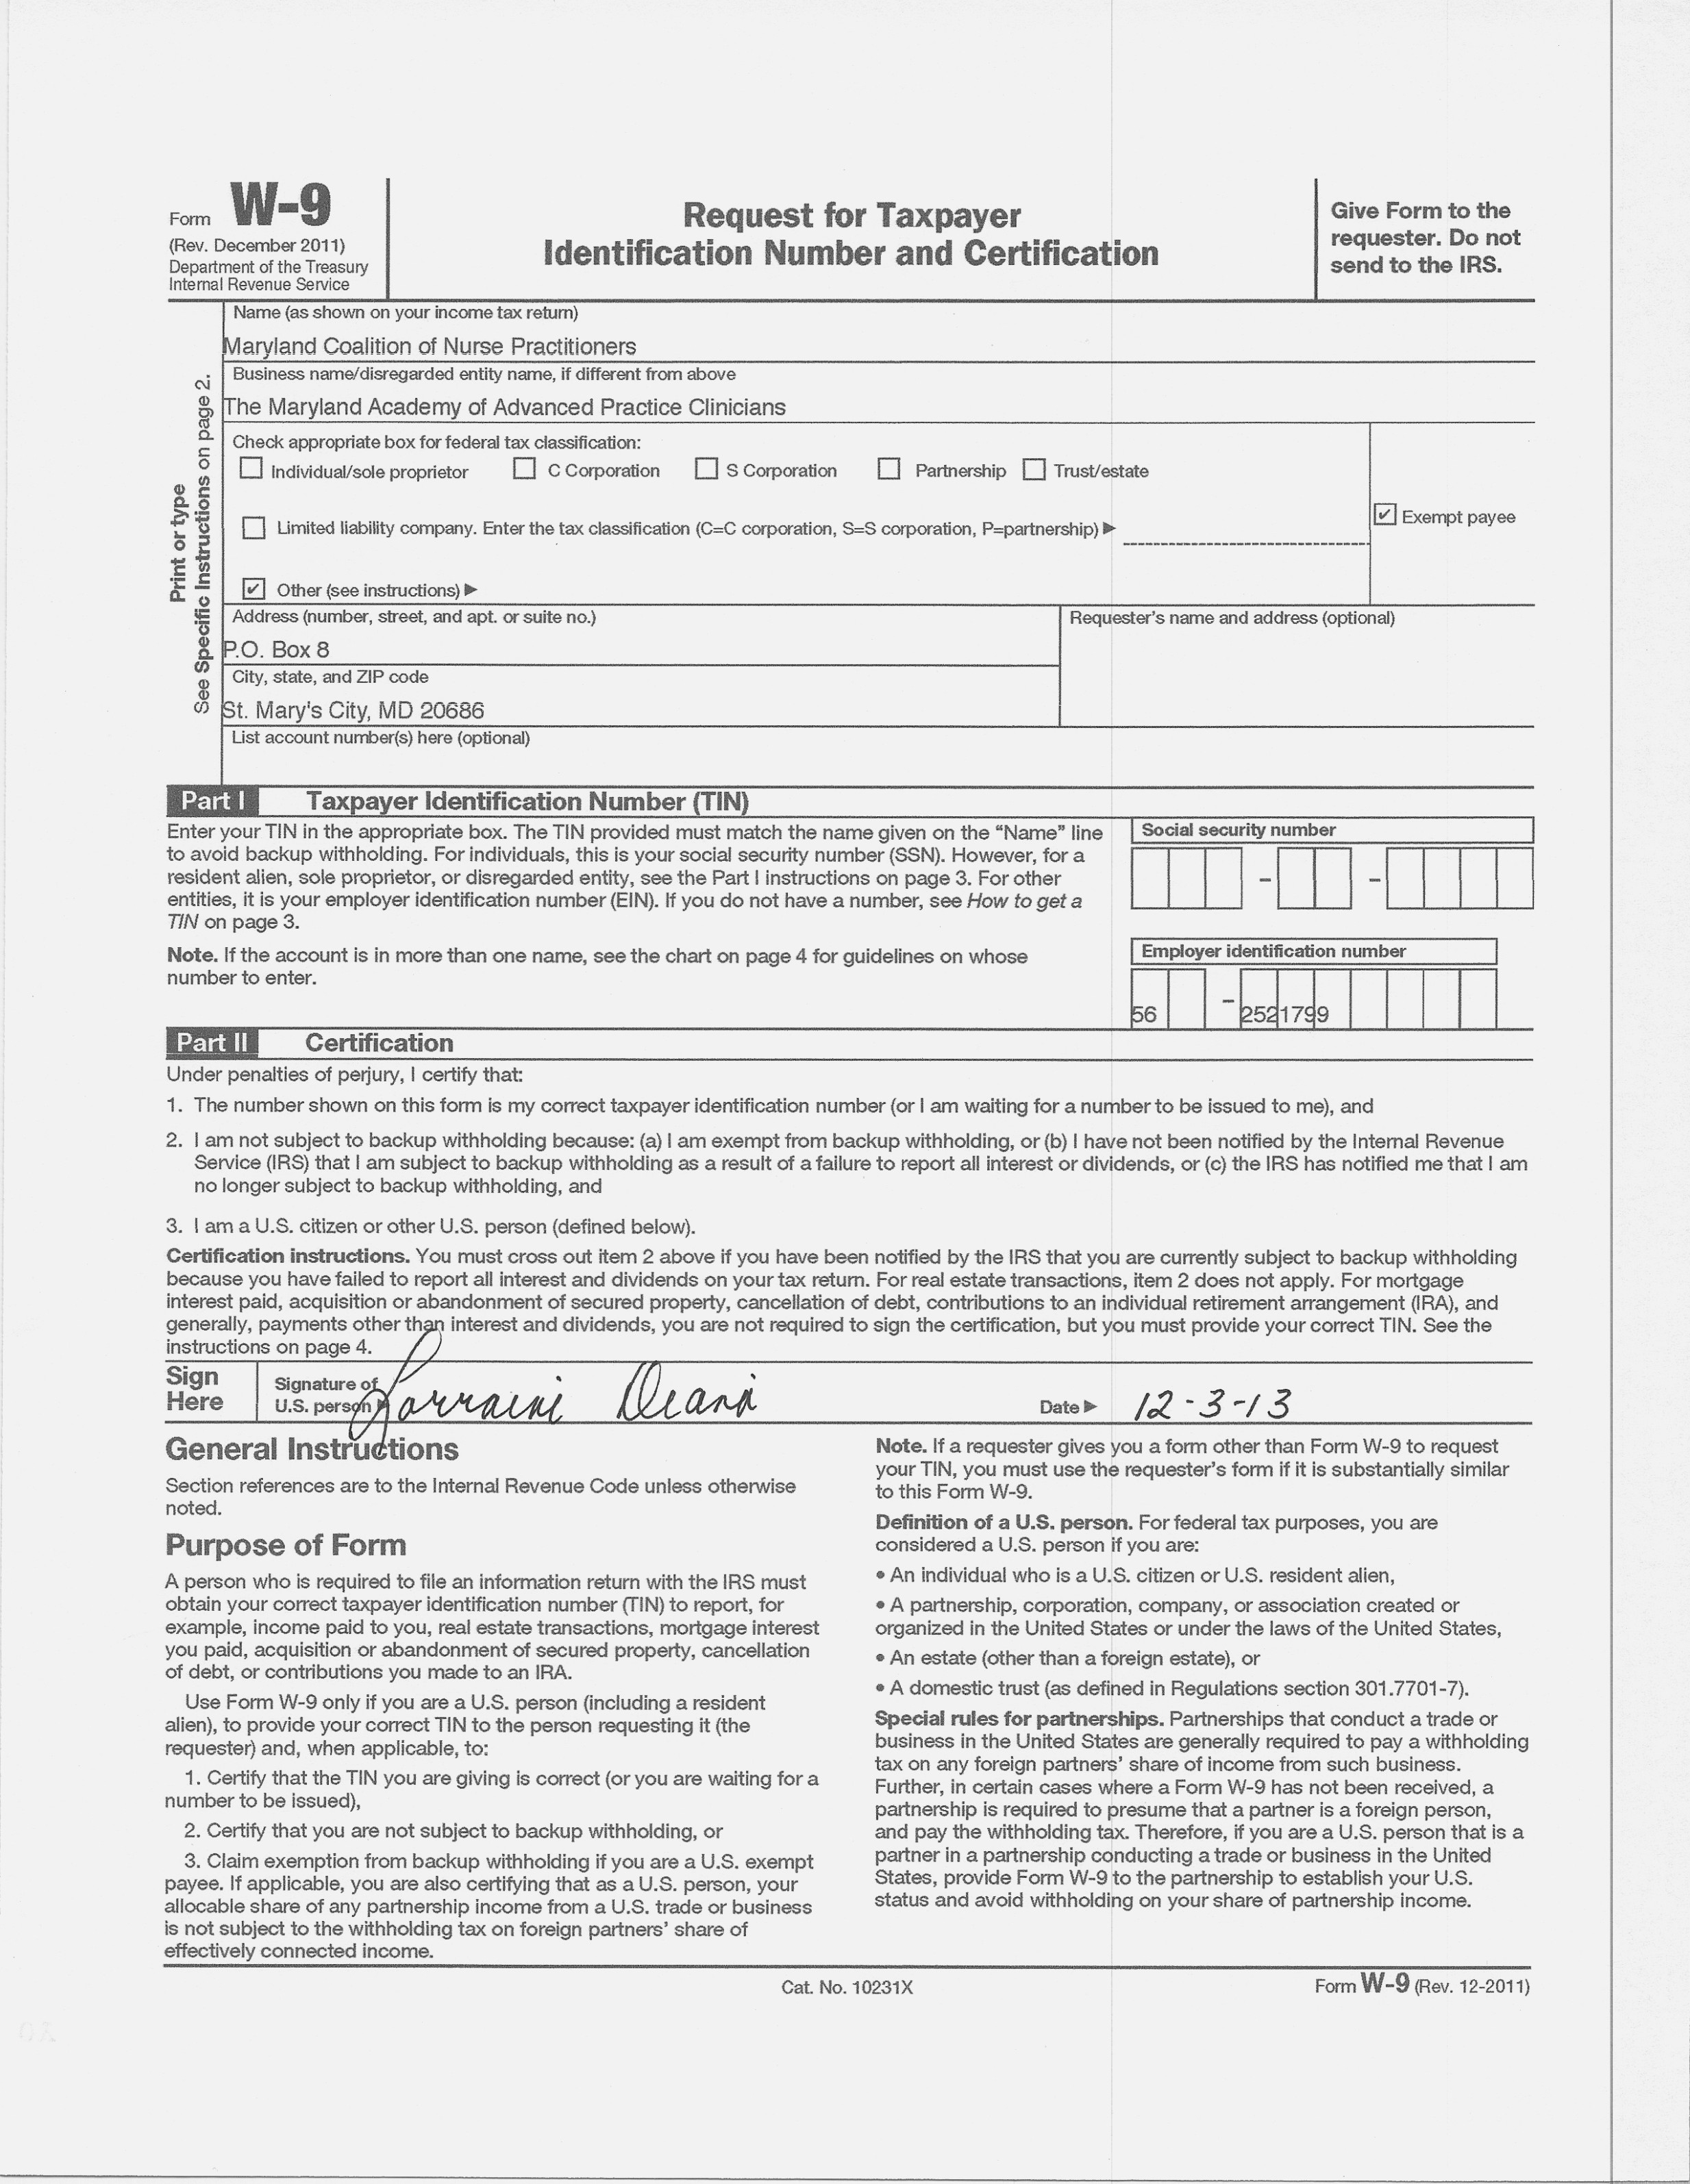 W 15 Form Pdf – W9 Form 2017 Download – The Invoice And Form Template - W9 Form Printable 2017 Free